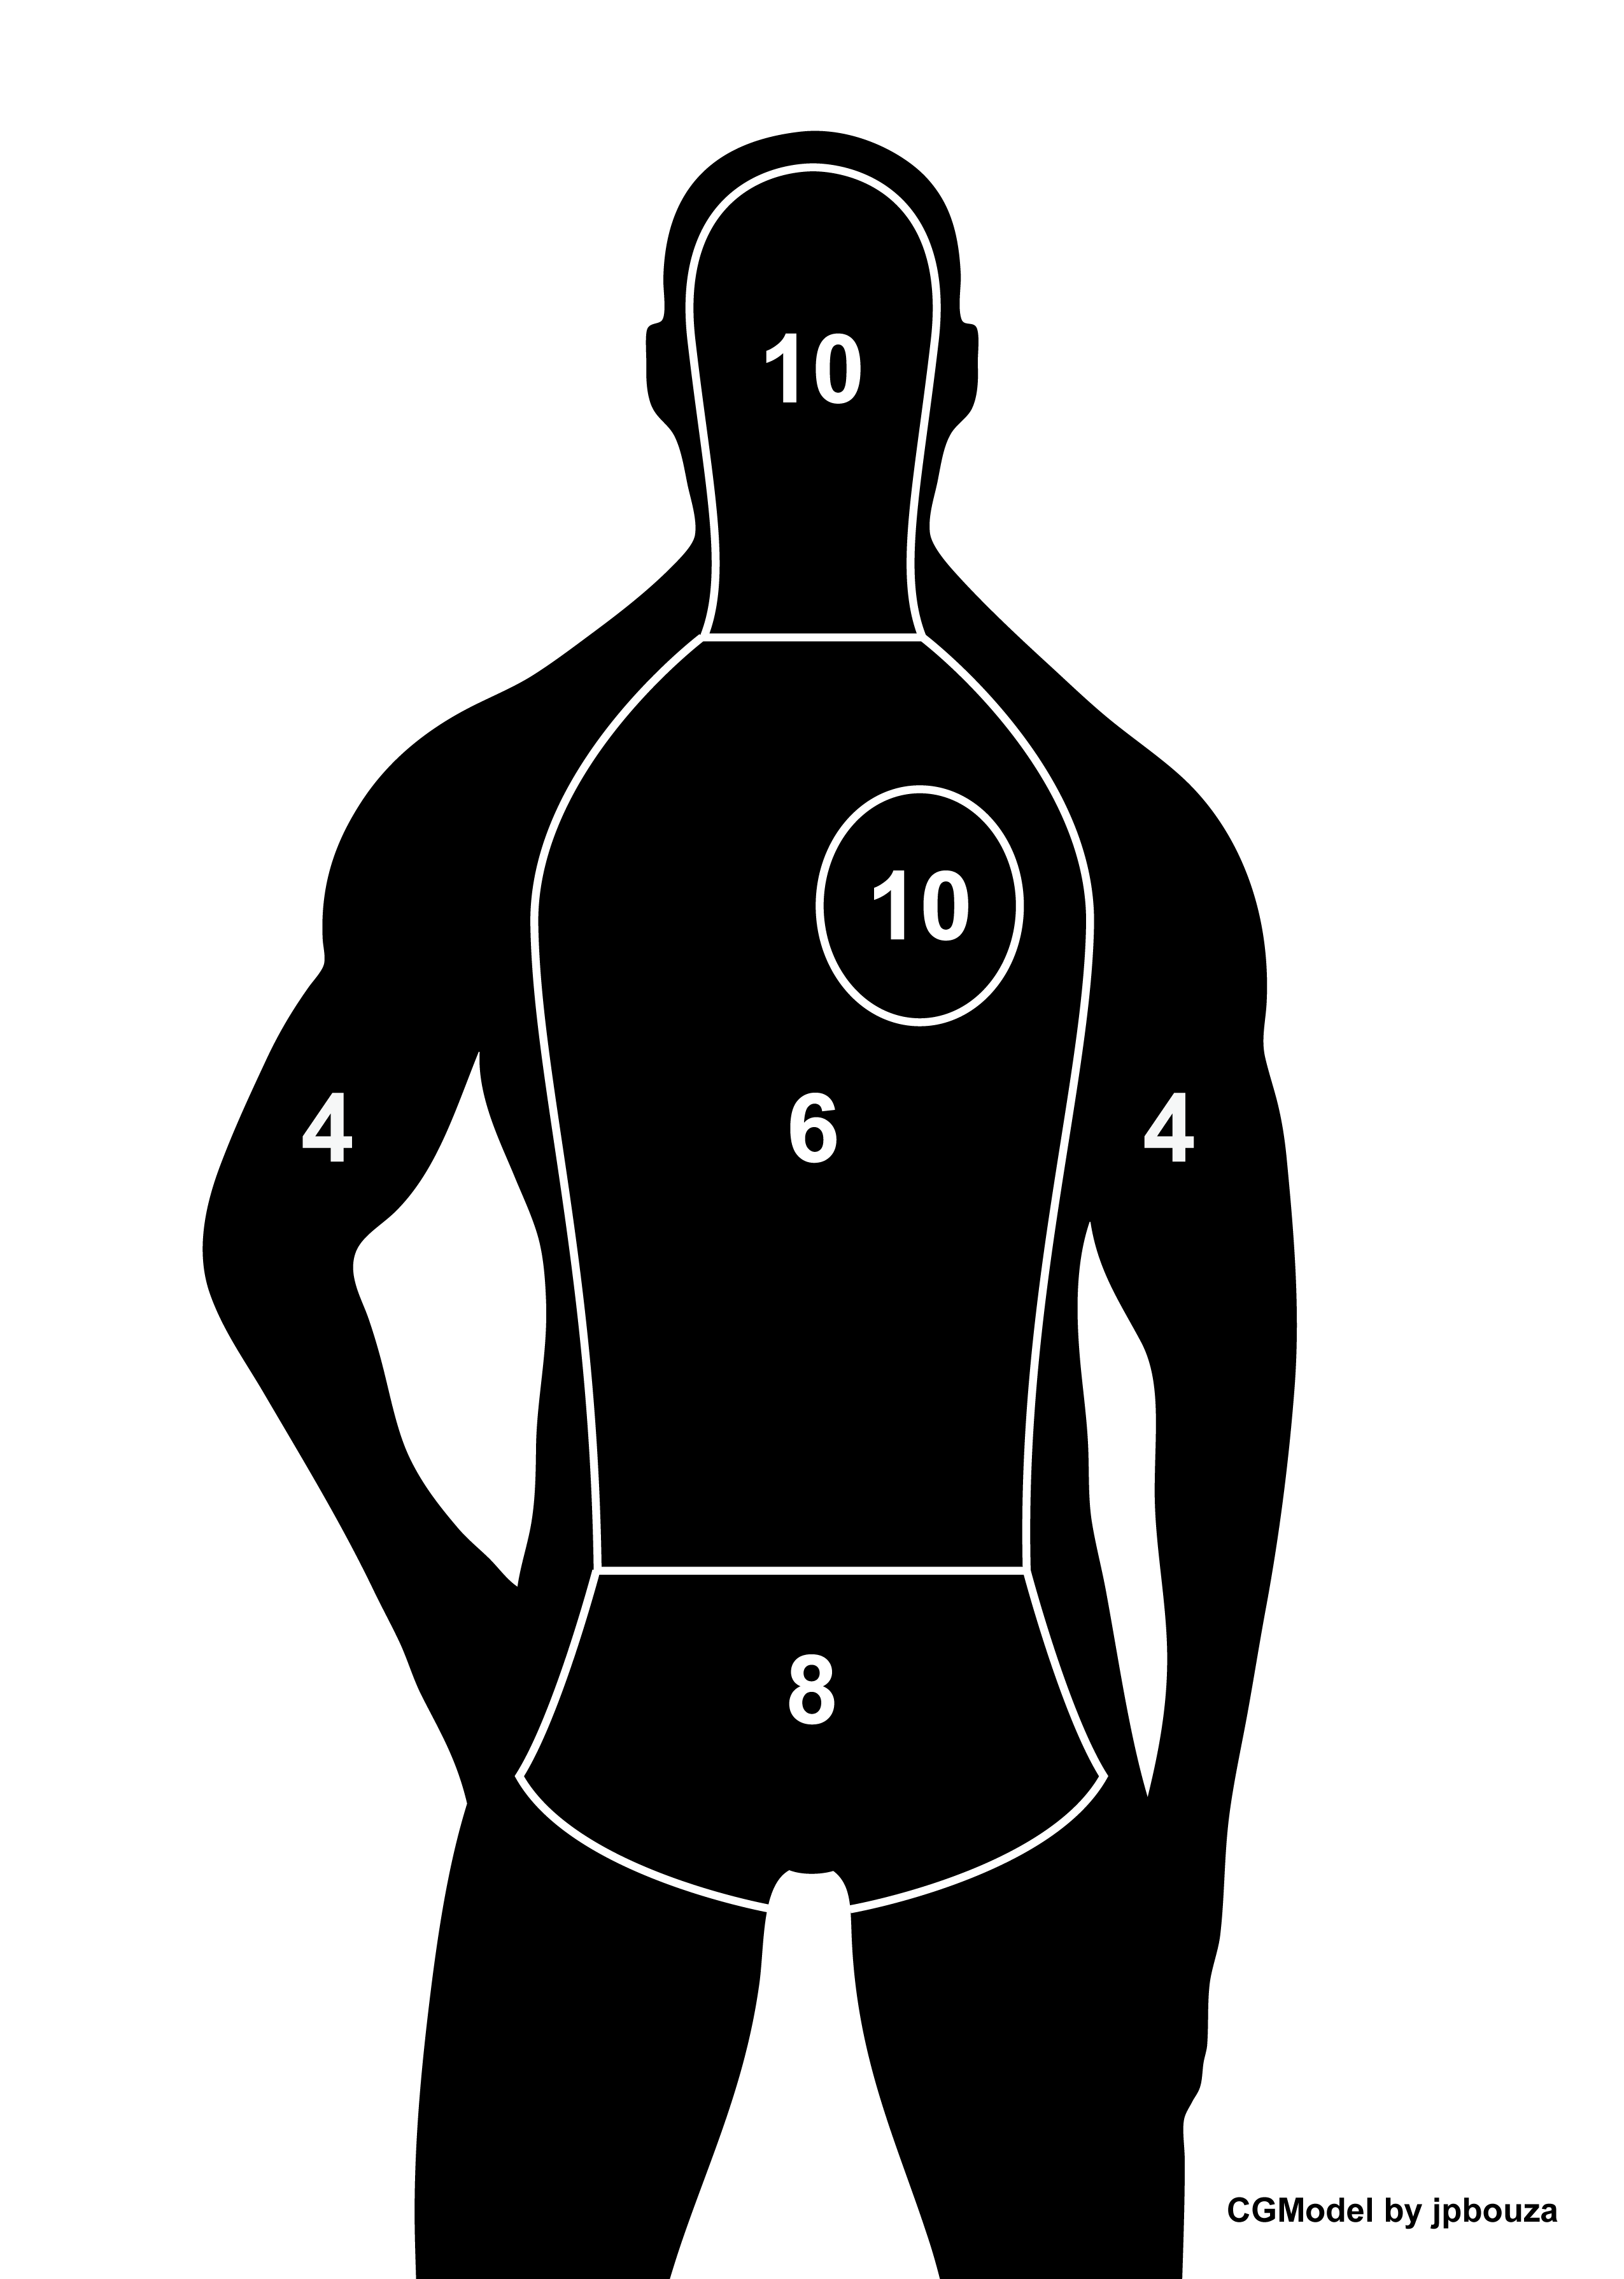 Http 4vector Com I Free Vector The Set Of Target Vectors Human Circle Birds And Wolf 130993 Set 20of 20targets Shooting Targets Pistol Targets Range Targets